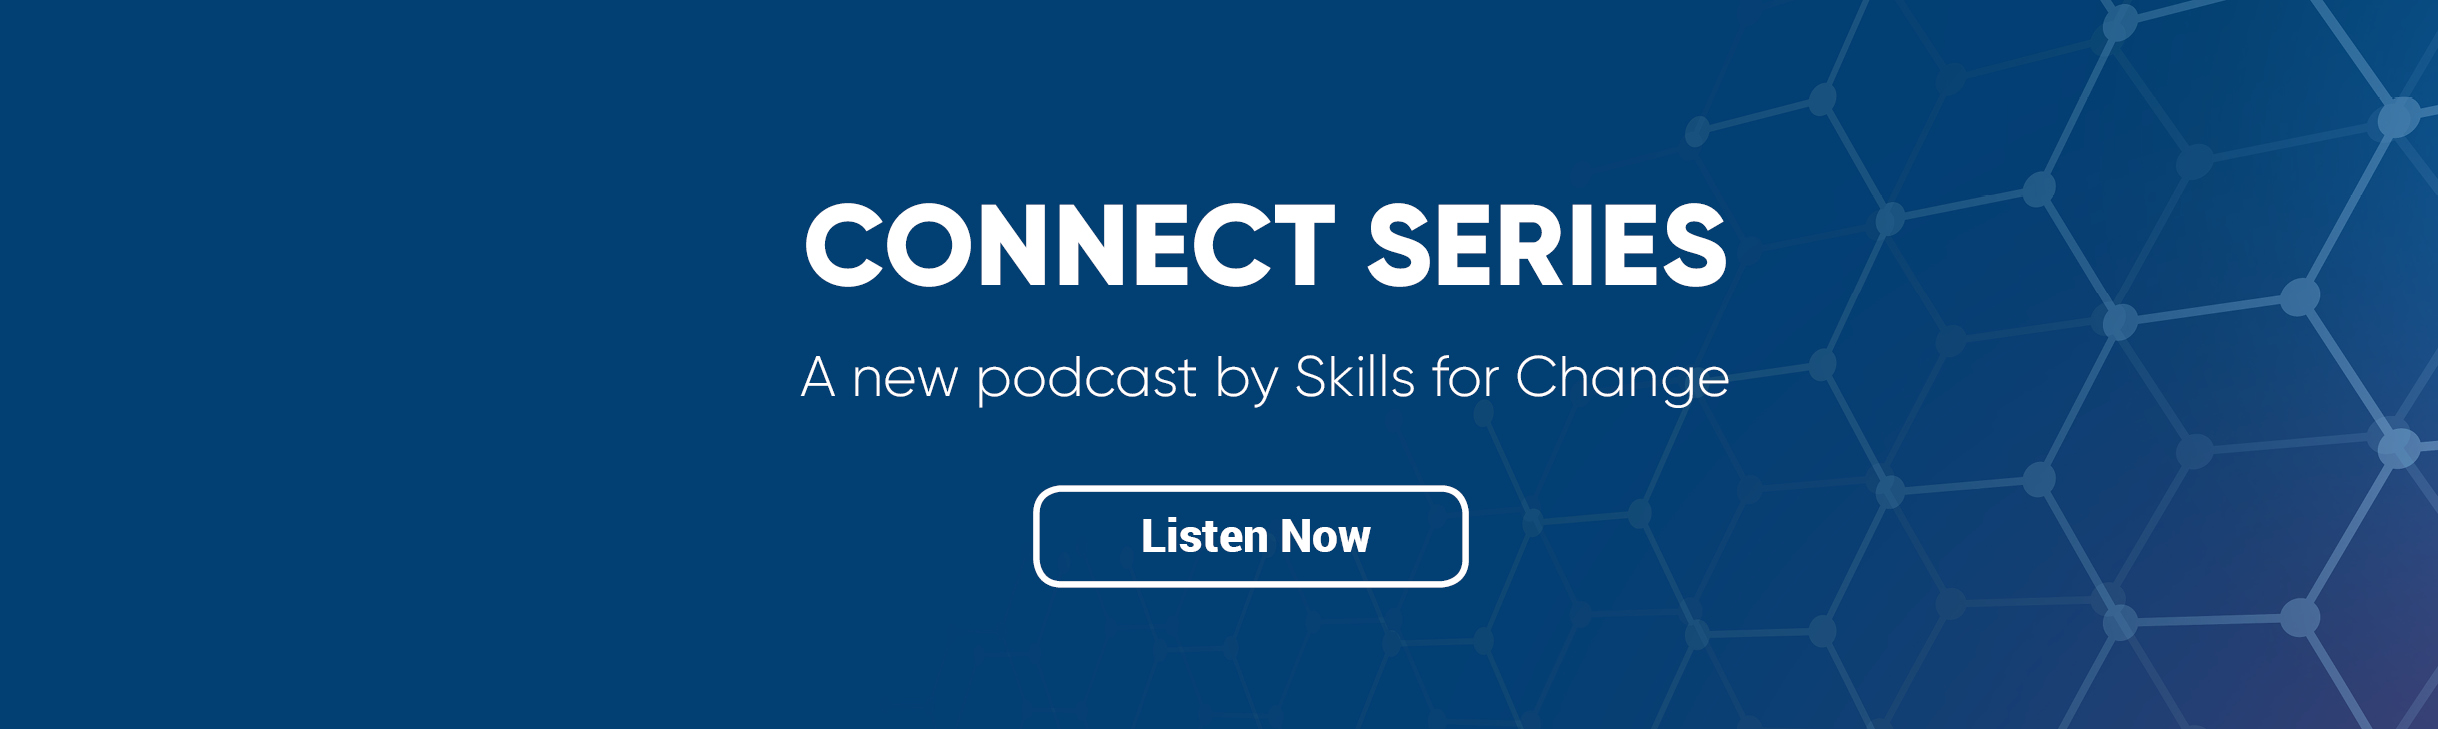 Connect-series_Podcast_BannerLast